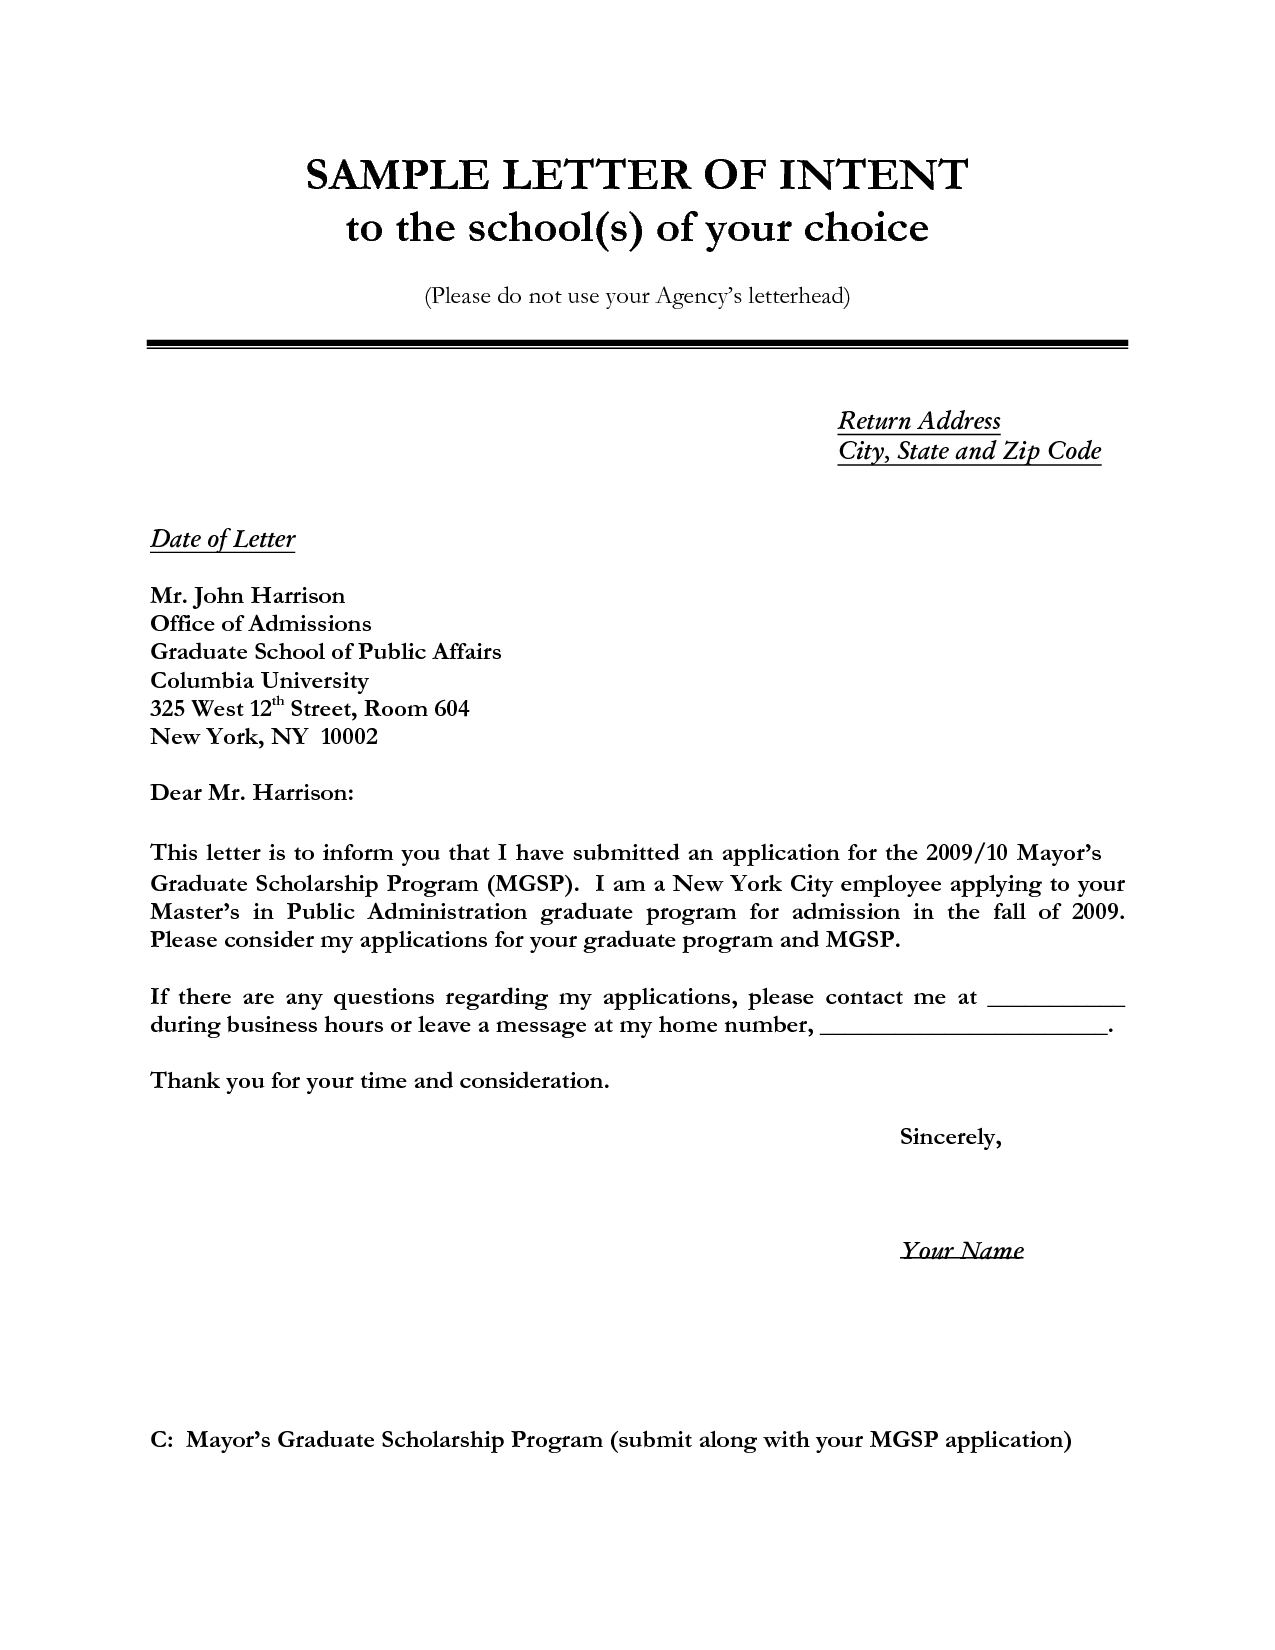 Real Estate Offer Letter Template - Letter Of Intent Sample